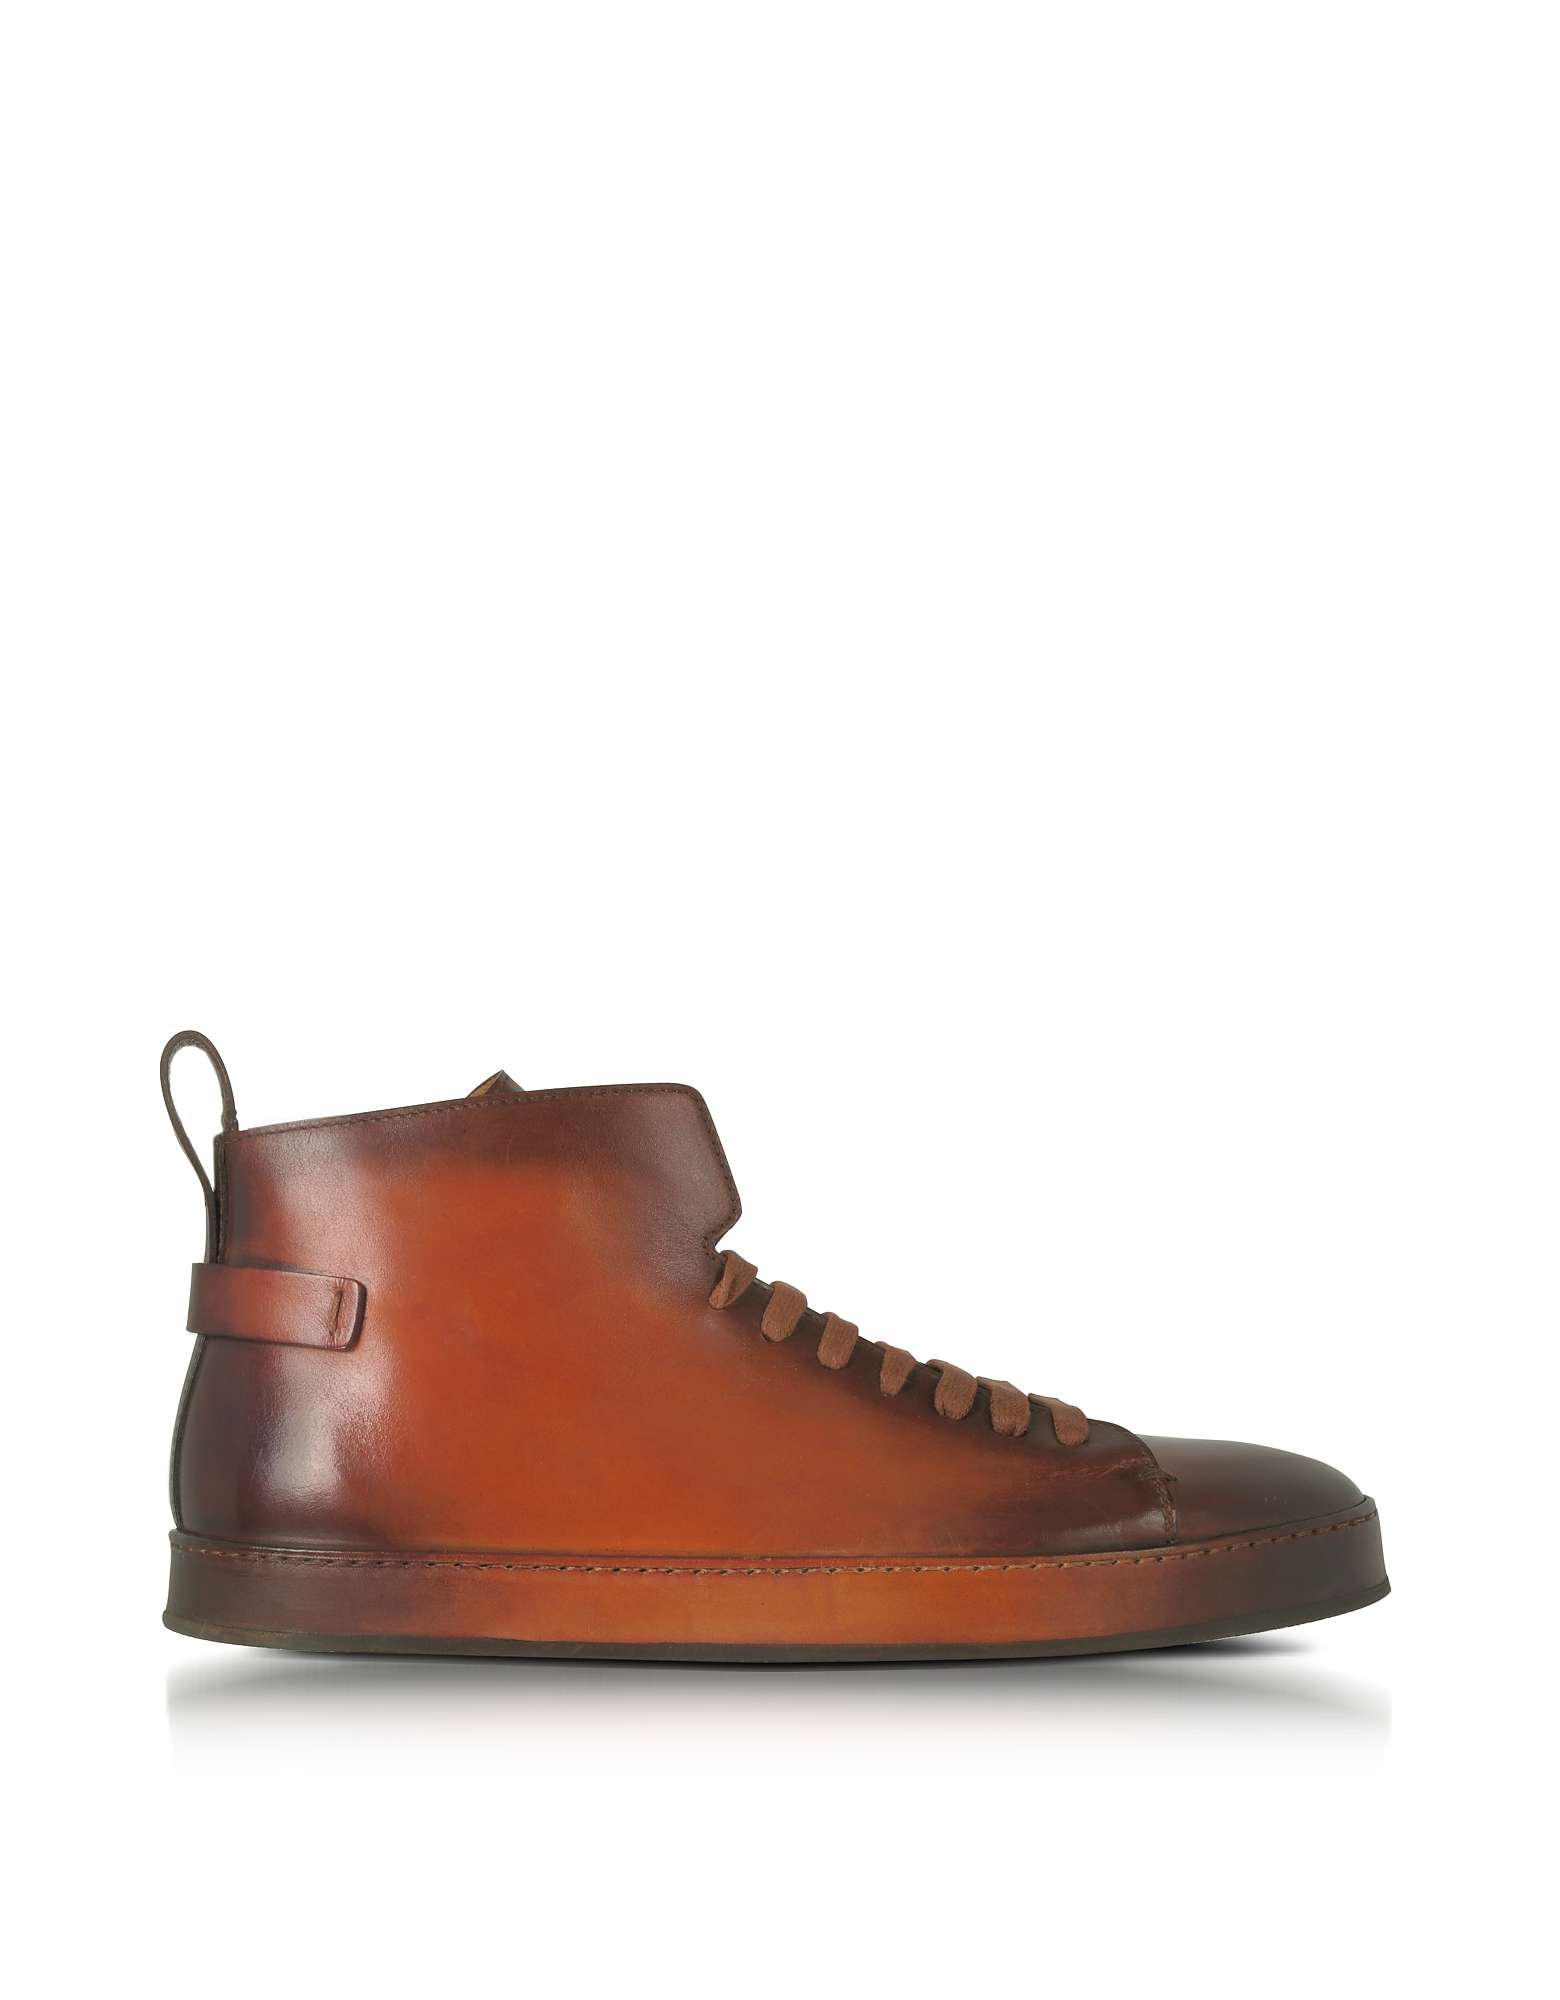 Santoni Shoes, Brown Leather High Top Sneakers